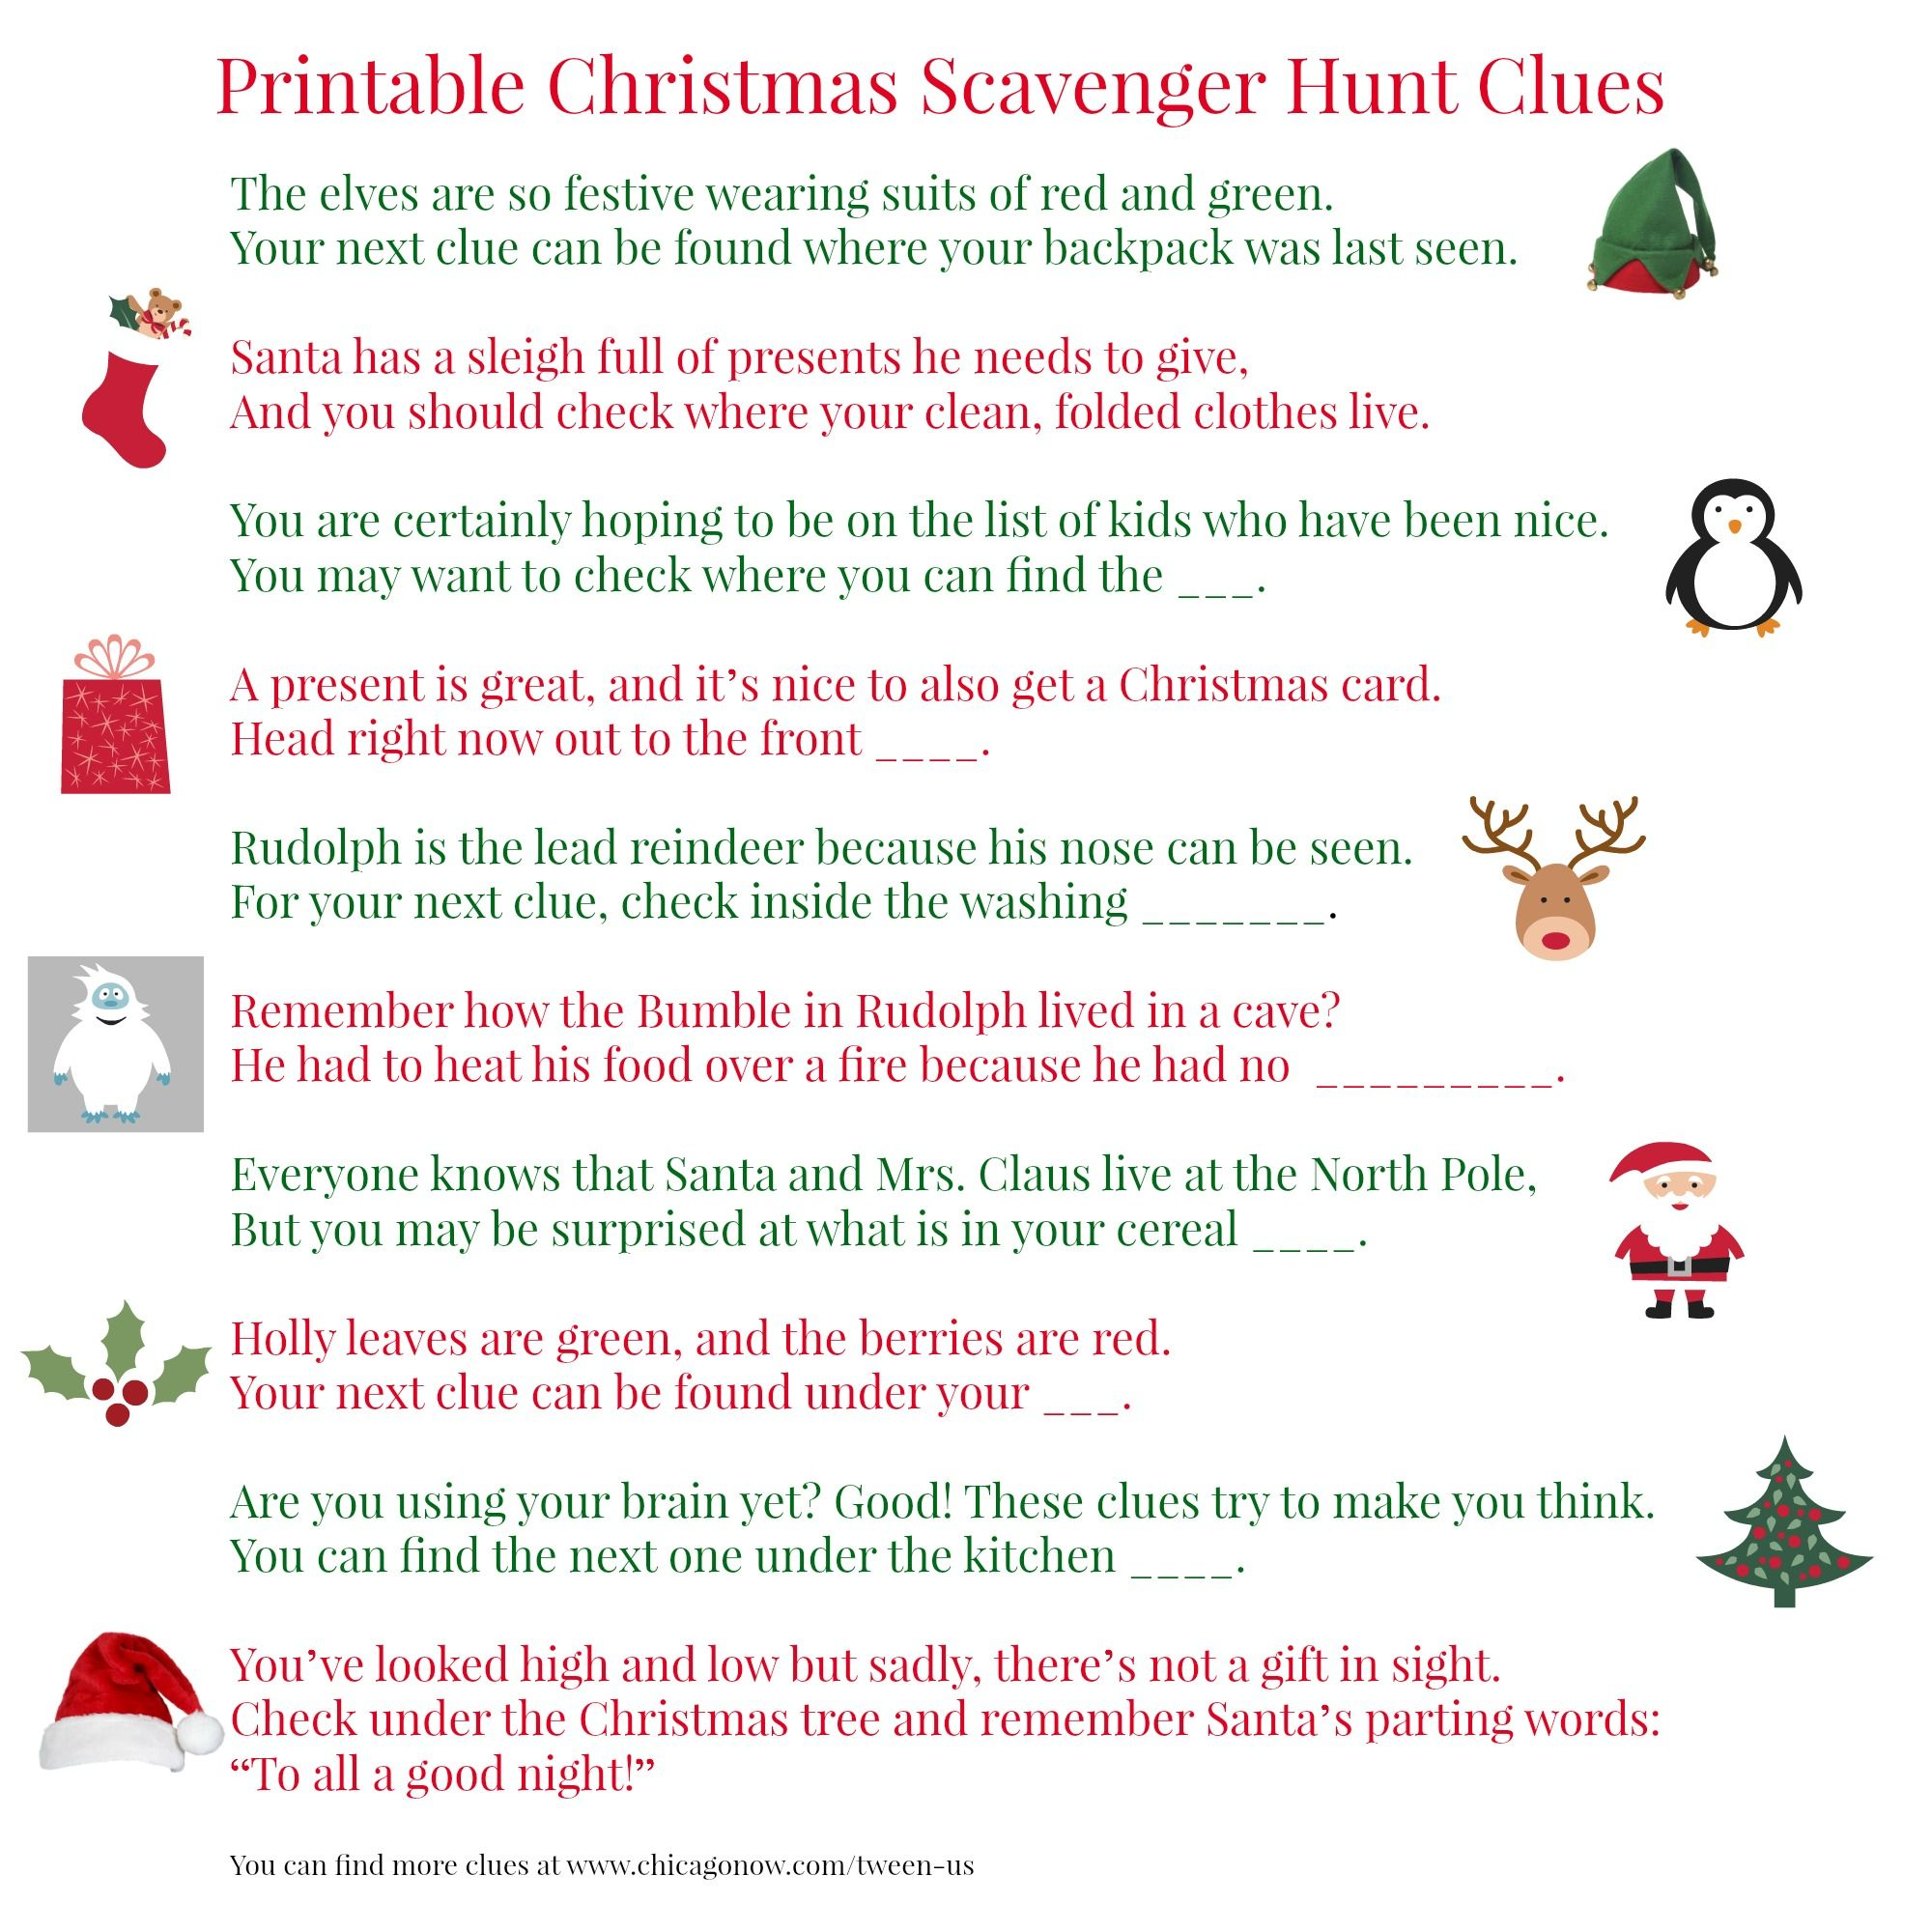 Awesome Christmas Party Scavenger Hunt Ideas Part - 13: Printable Christmas Scavenger Hunt Clues For Present Finding Fun